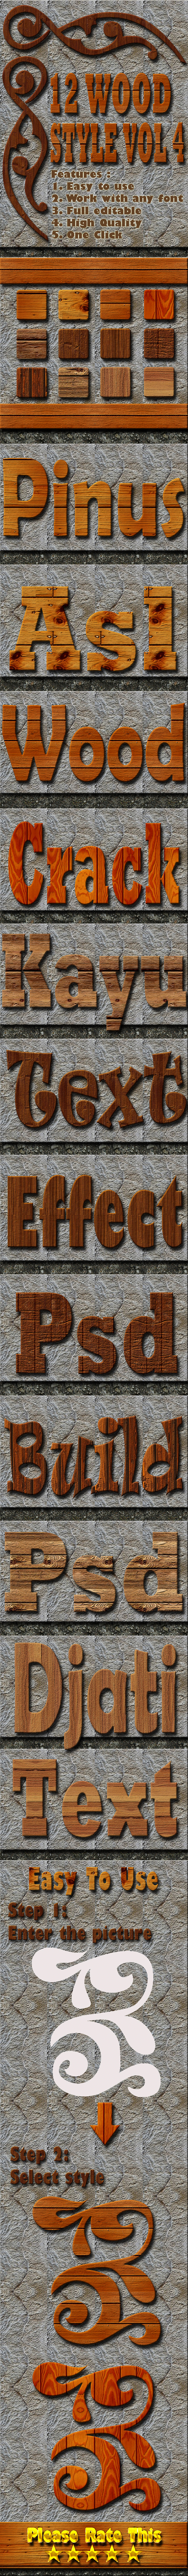 12 Wood Text Effect Style Vol 4 - Styles Photoshop